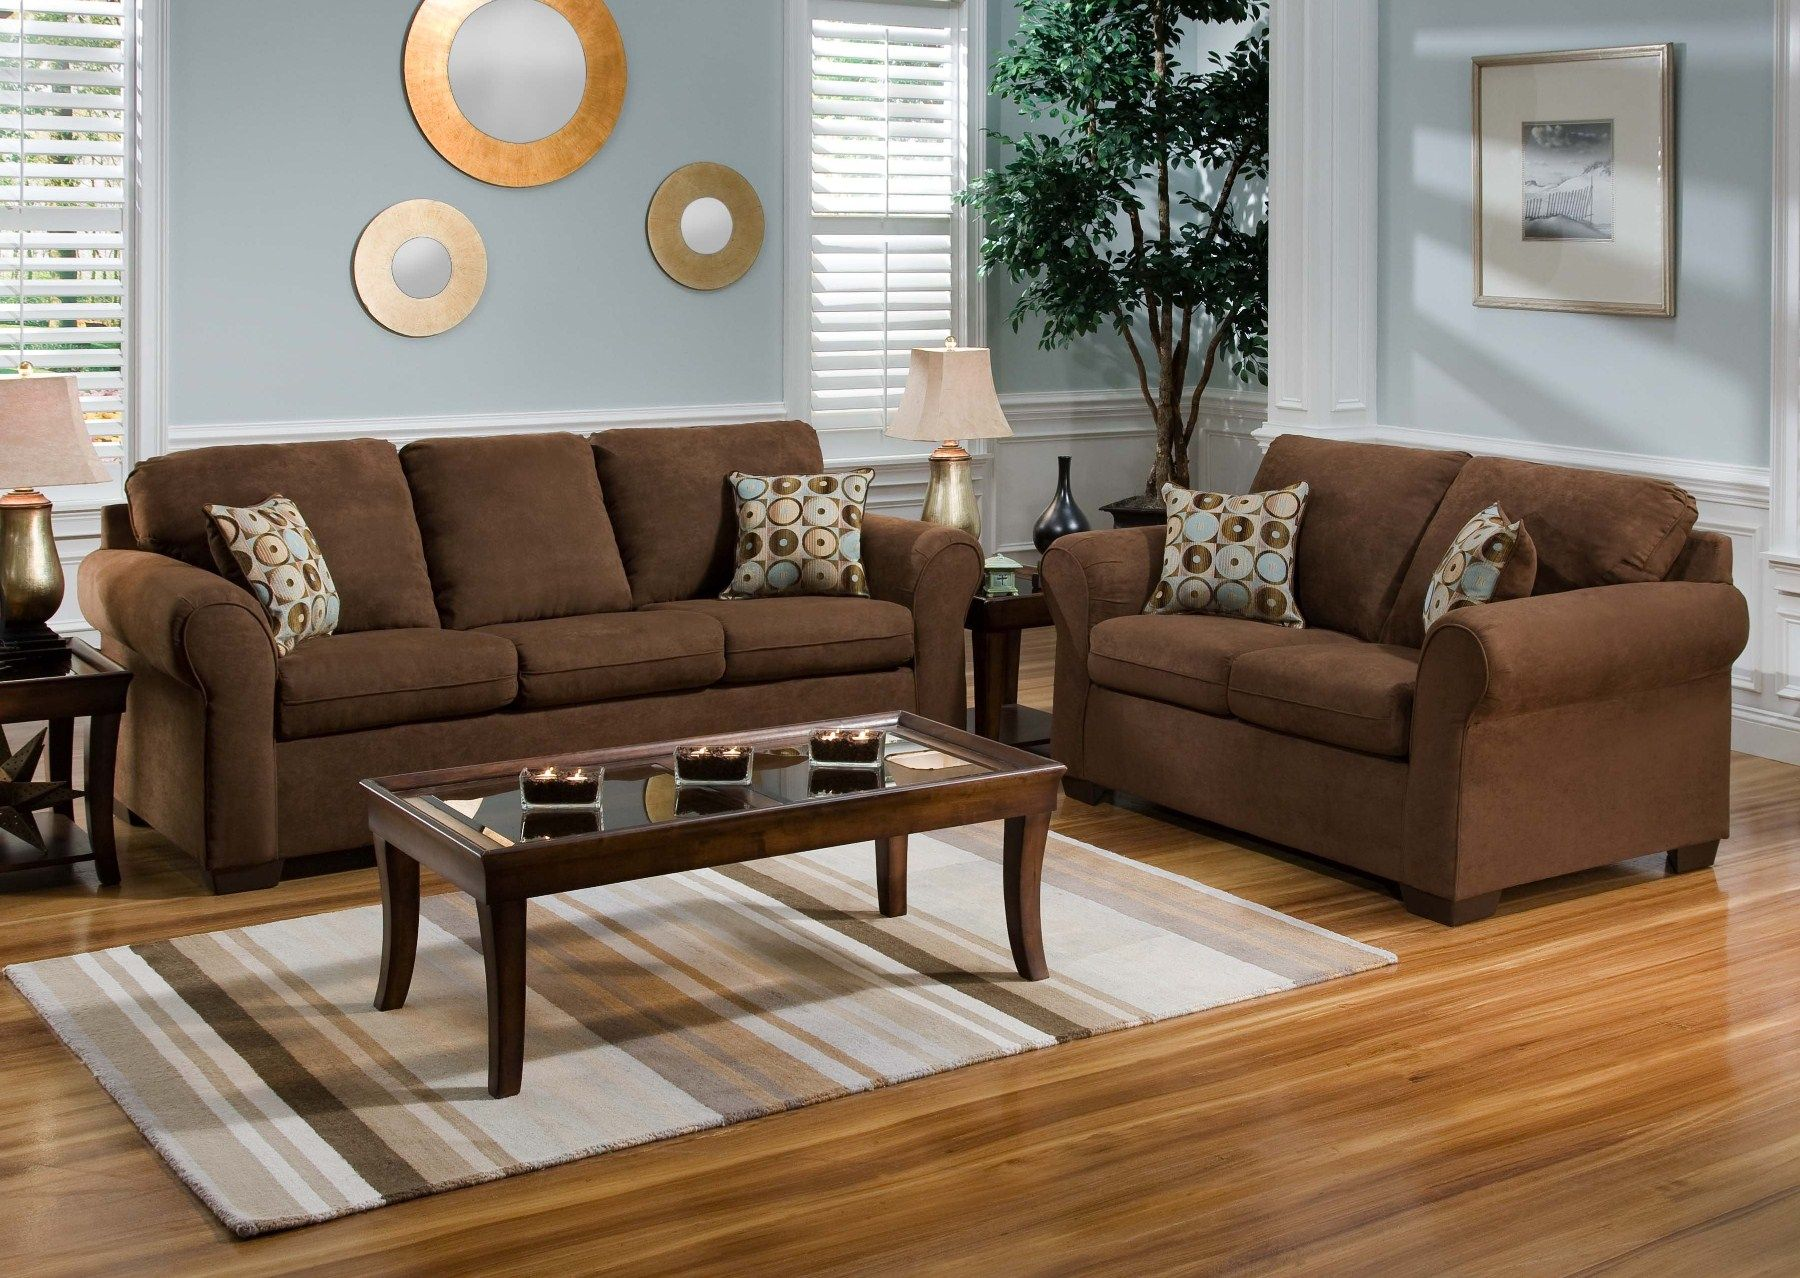 Color Schemes For Living Rooms With Brown Furniture 25 Brown Living Room Design Ideas  Brown Couch Living Room